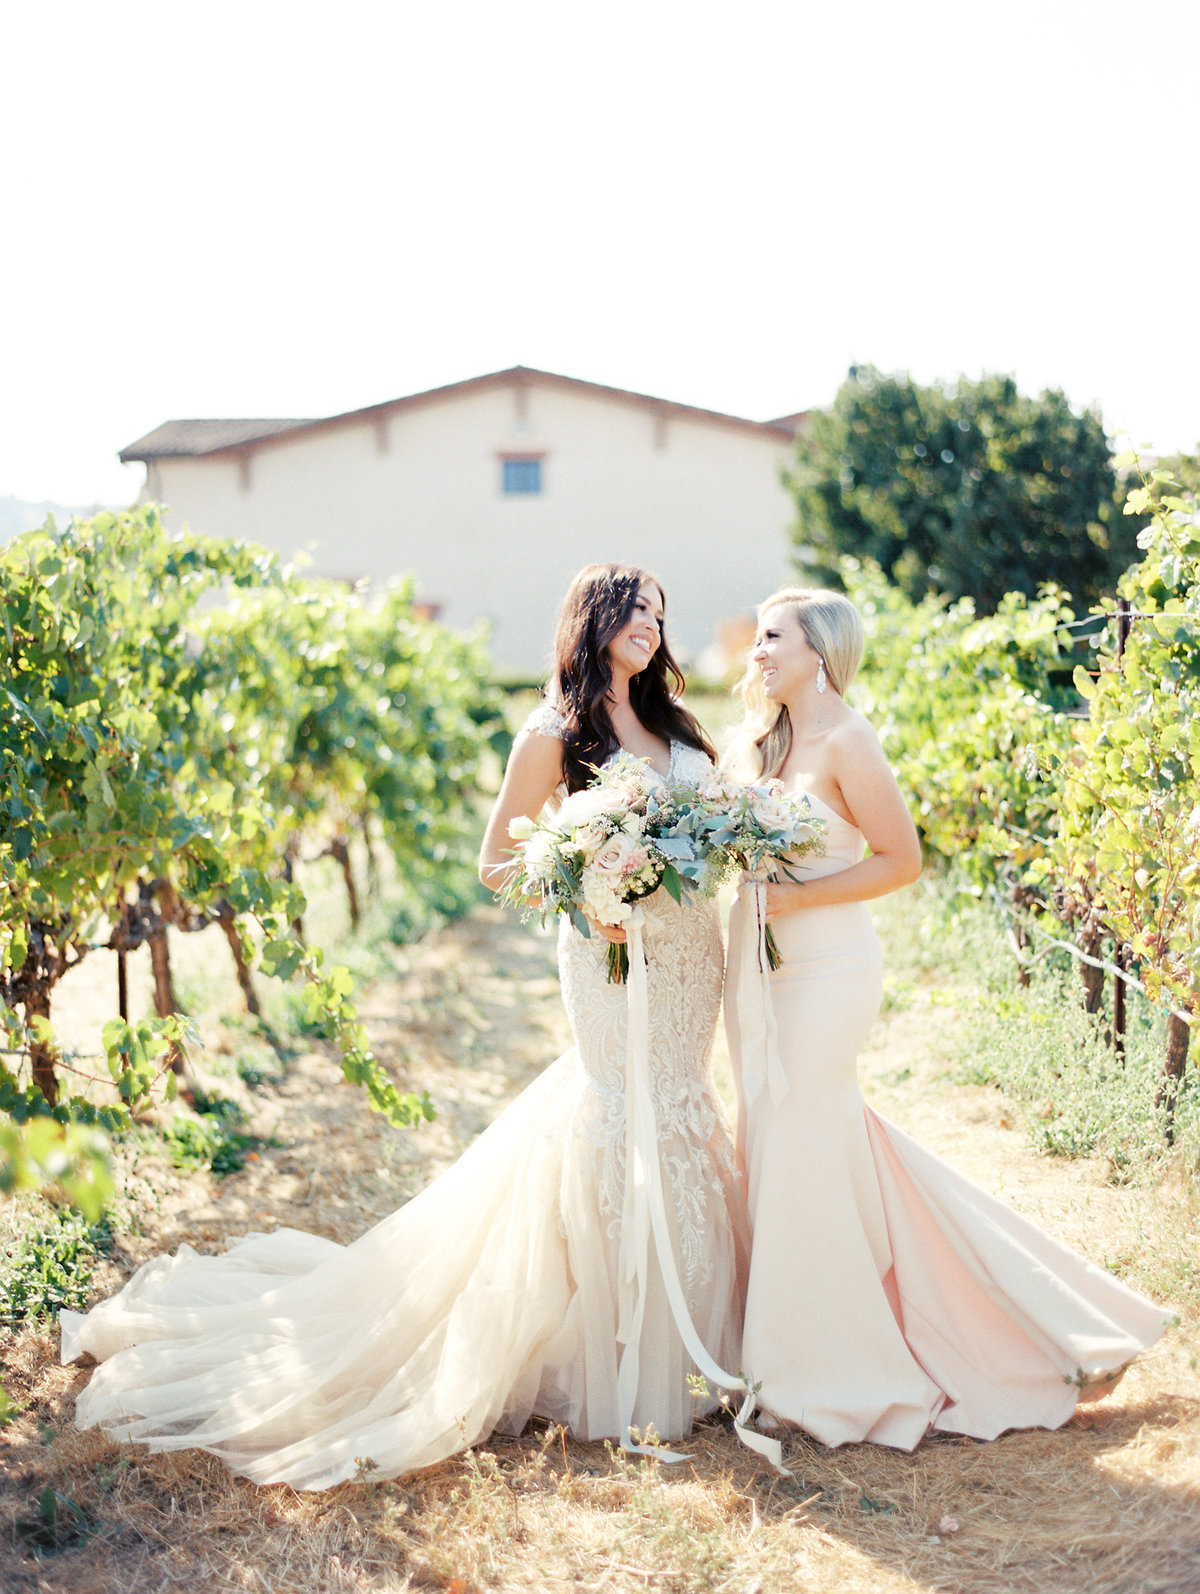 Natalie Bray Studios, Natalie Bray Photography, Southern California Wedding Photographer, Fine Art wedding, Destination Wedding Photographer, Sonoma Wedding Photographer-22